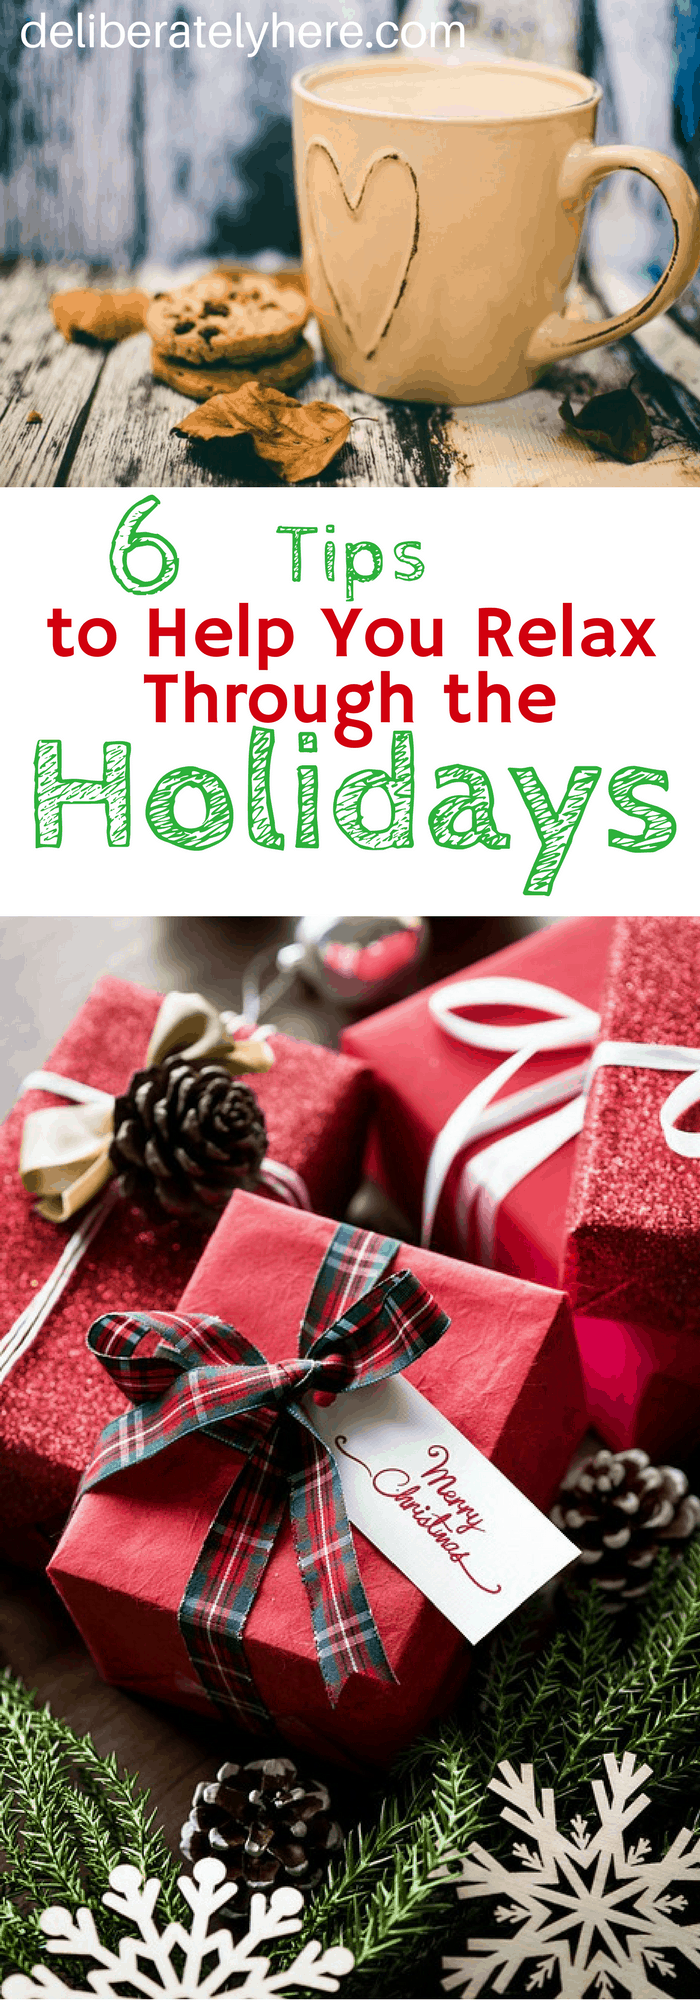 6 Tips to Help You Relax Through the Holidays